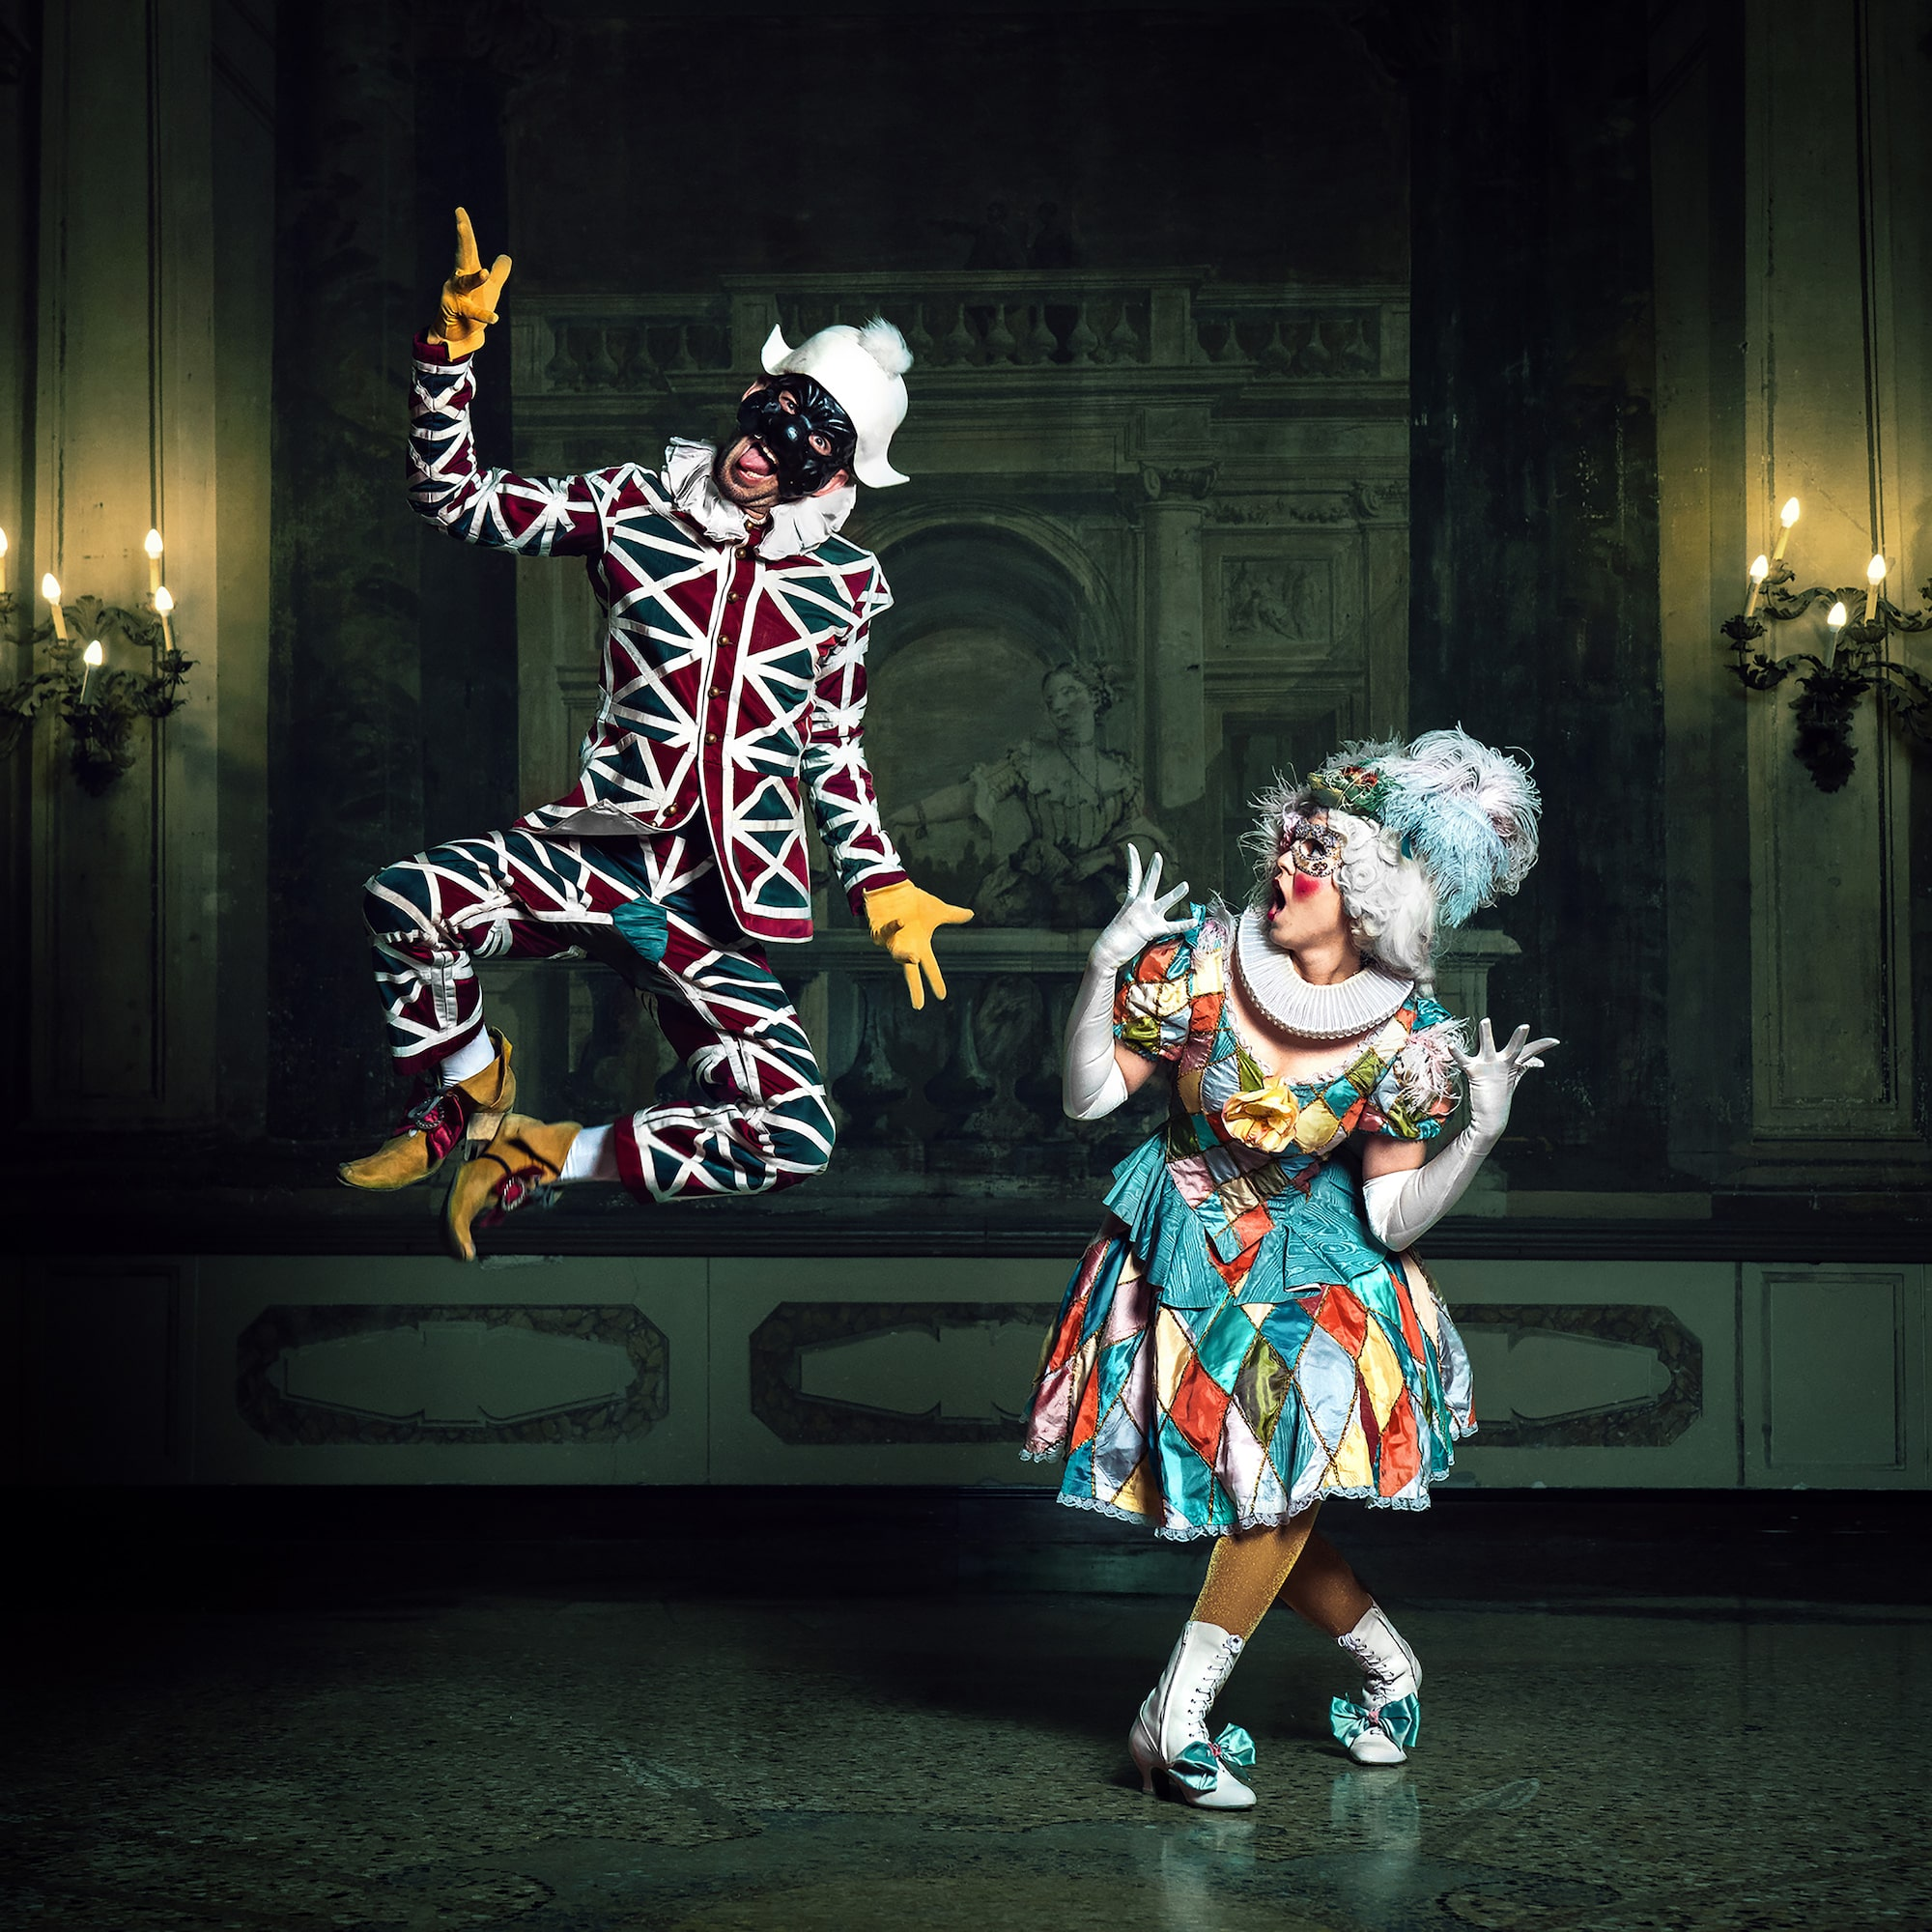 mathias kniepeiss sony alpha 7RIII 2 clowns in costume with one jumping in the air